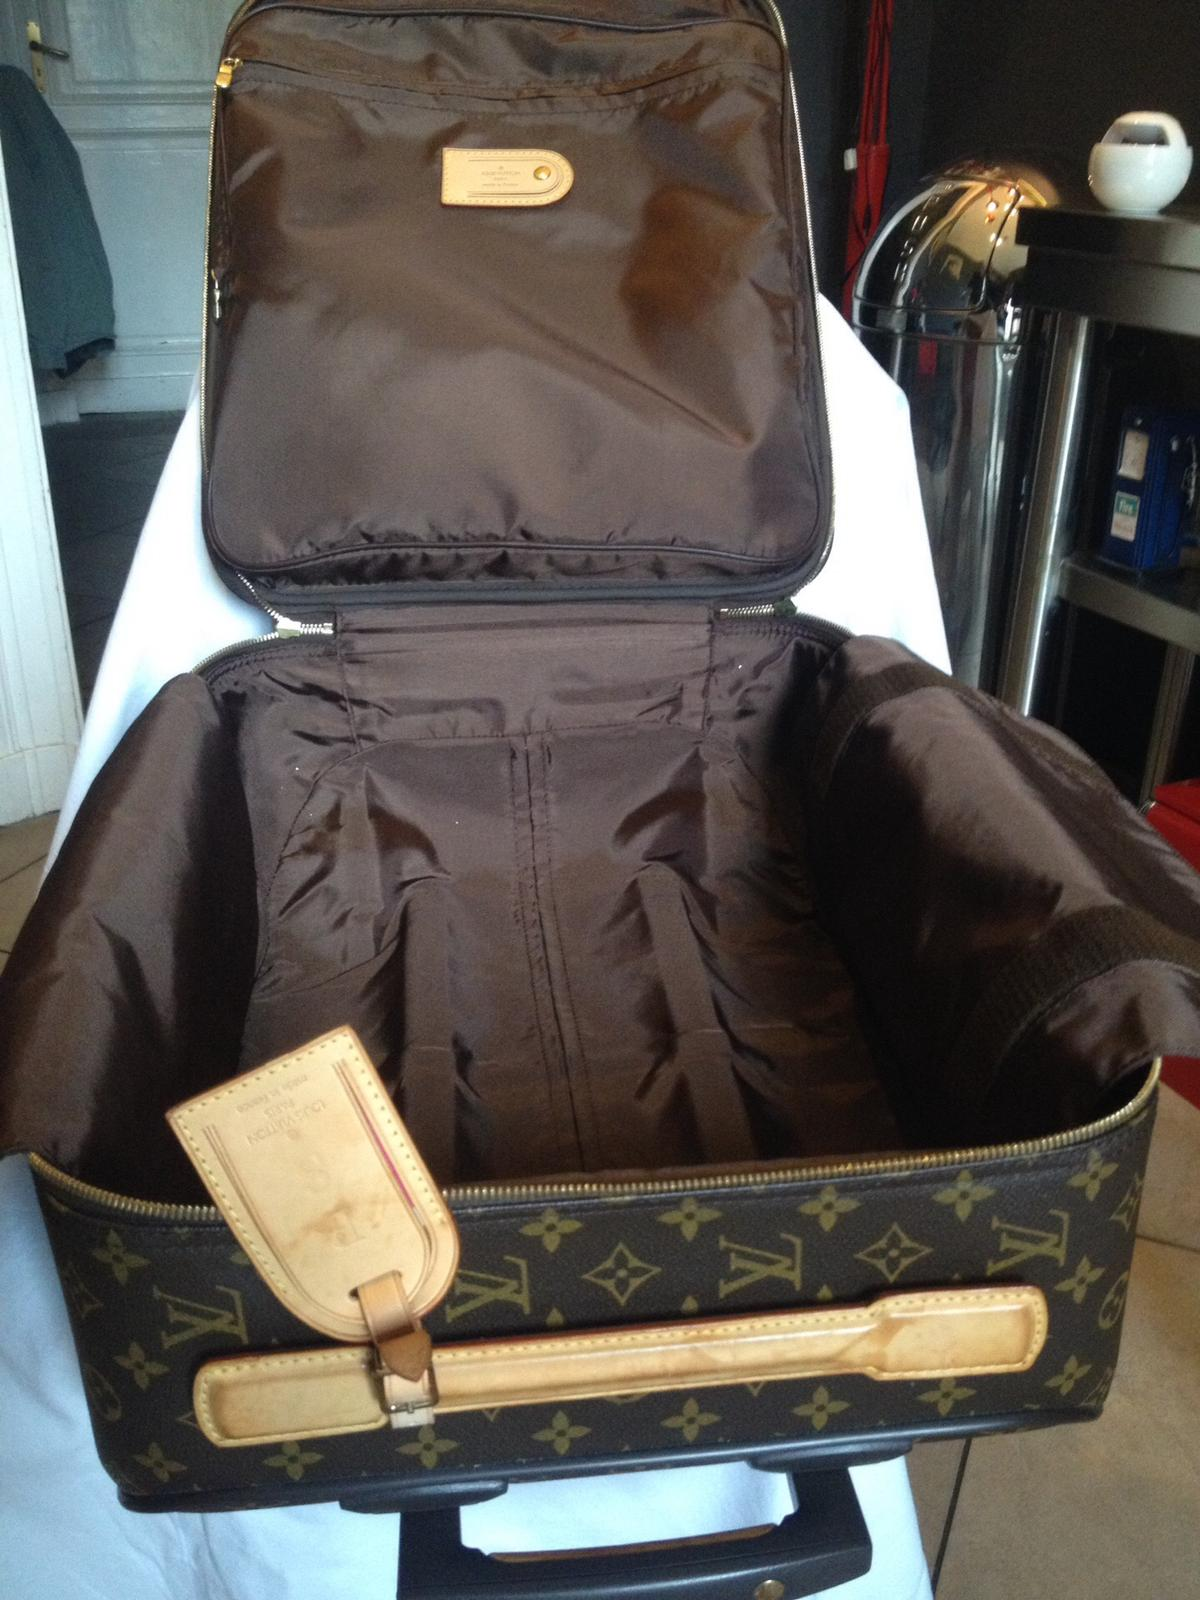 d52addb751 Trolley louis vuitton in 10132 Torino for €1,000.00 for sale - Shpock